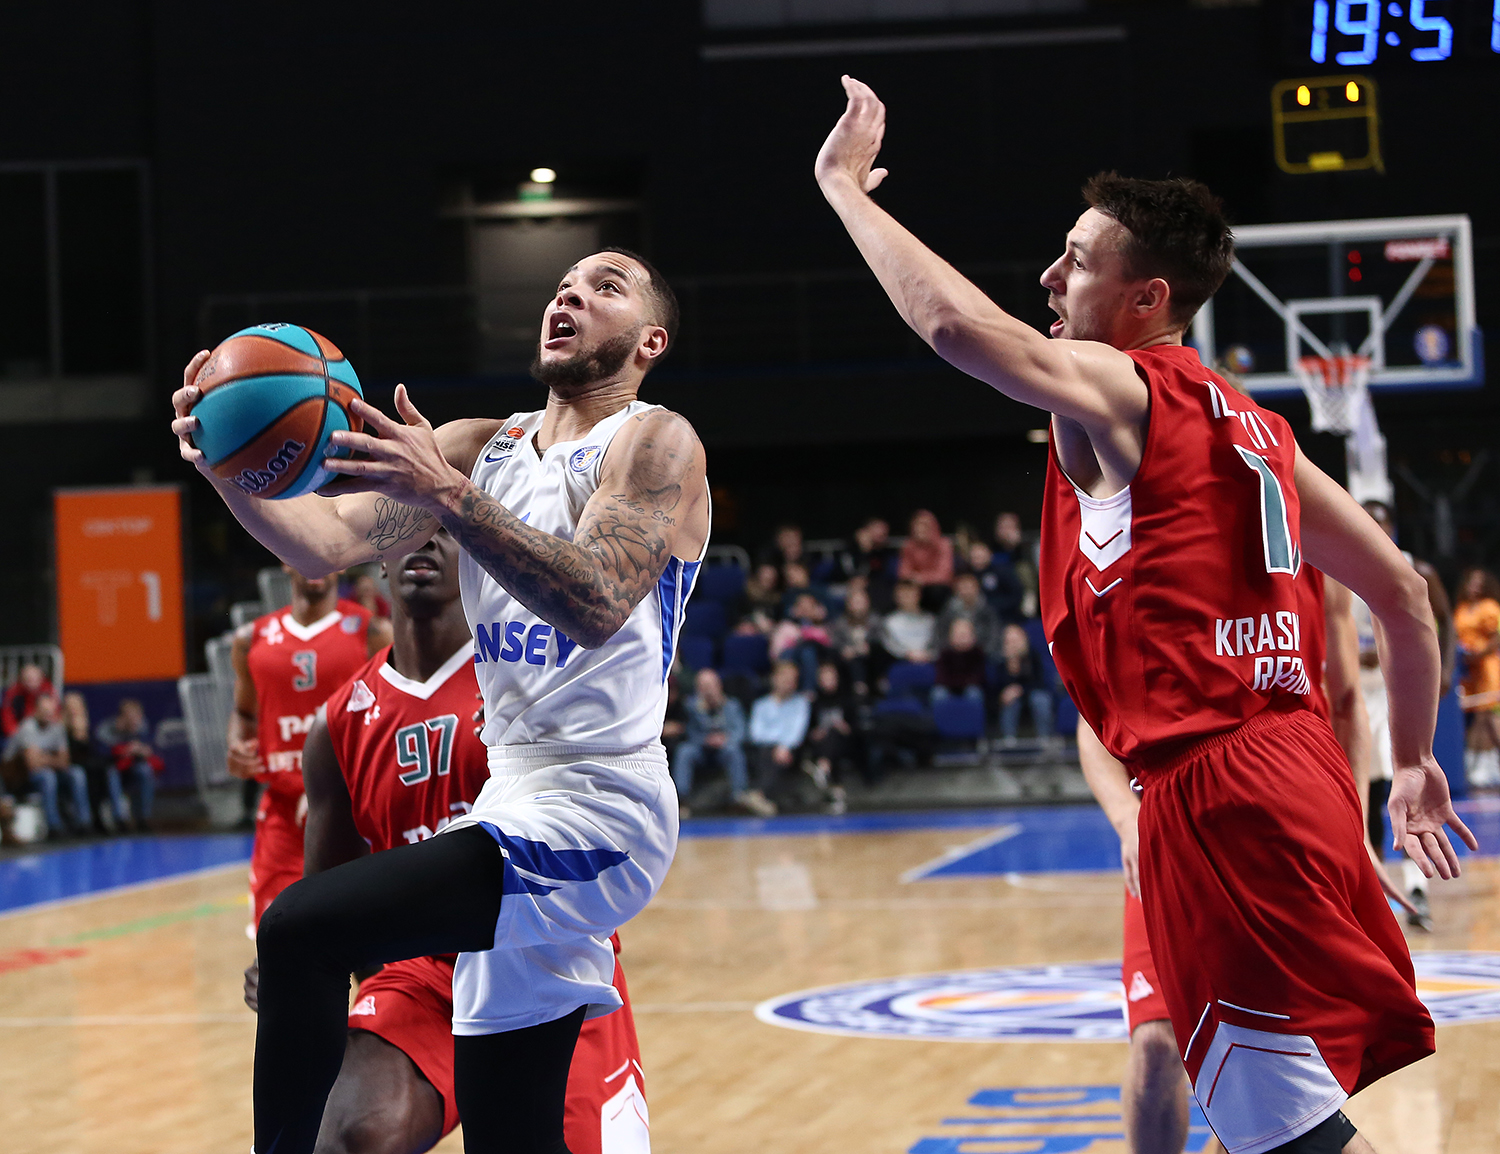 Enisey's first win over Loko in Krasnoyarsk